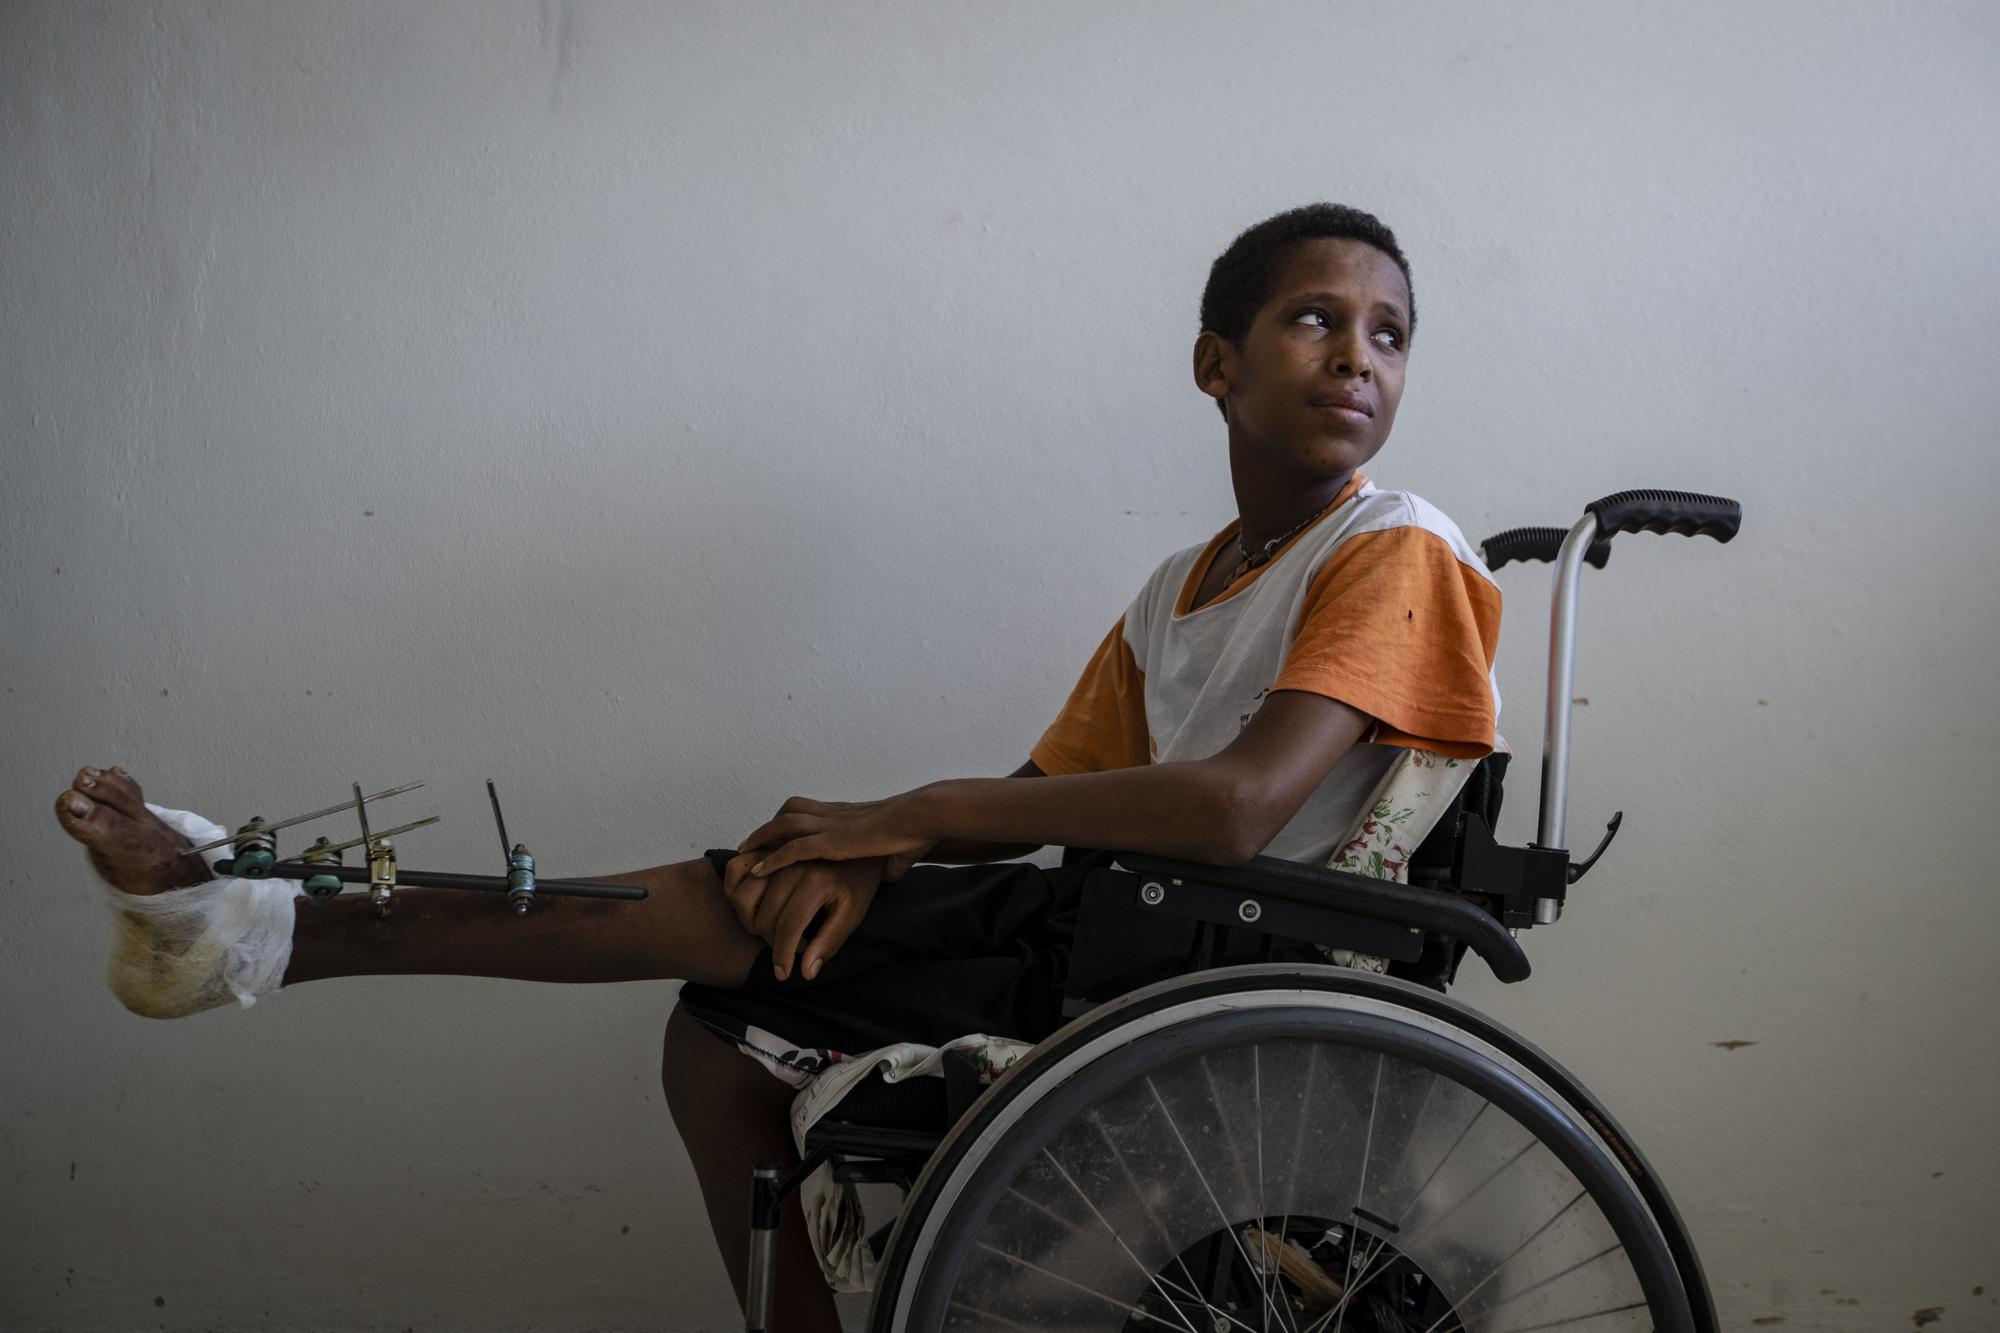 Desalegn Gebreselassie, 15, sits in his wheelchair as he recovers at the Ayder Referral Hospital in Mekele, in the Tigray region of northern Ethiopia, on Thursday, May 6, 2021. The teenager's foot was injured when a grenade exploded in his town of Edaga Hamus. (AP Photo/Ben Curtis)